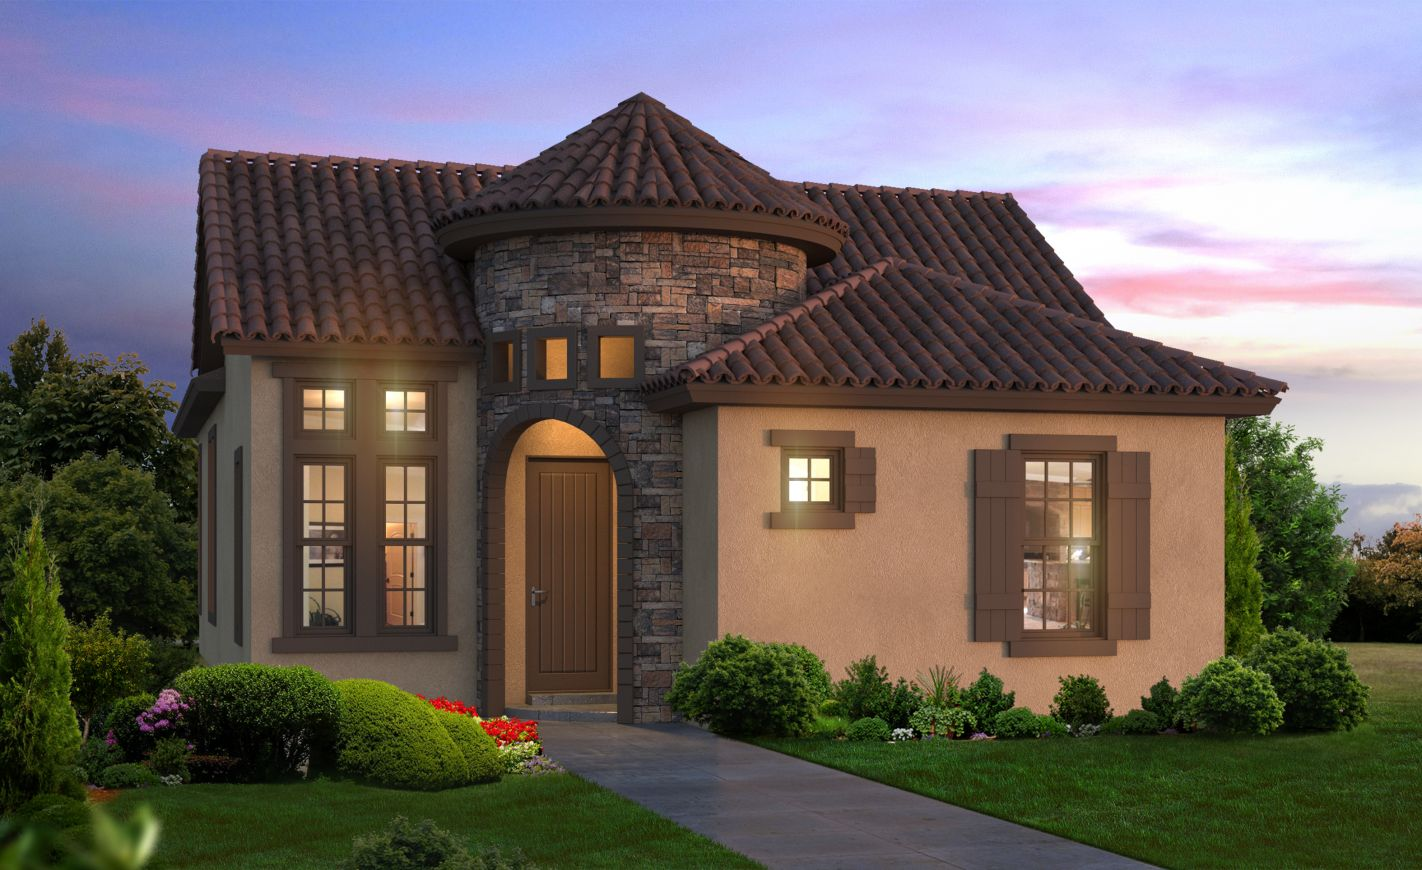 Nocatee Homes for Sale - The Capri at Nocatee